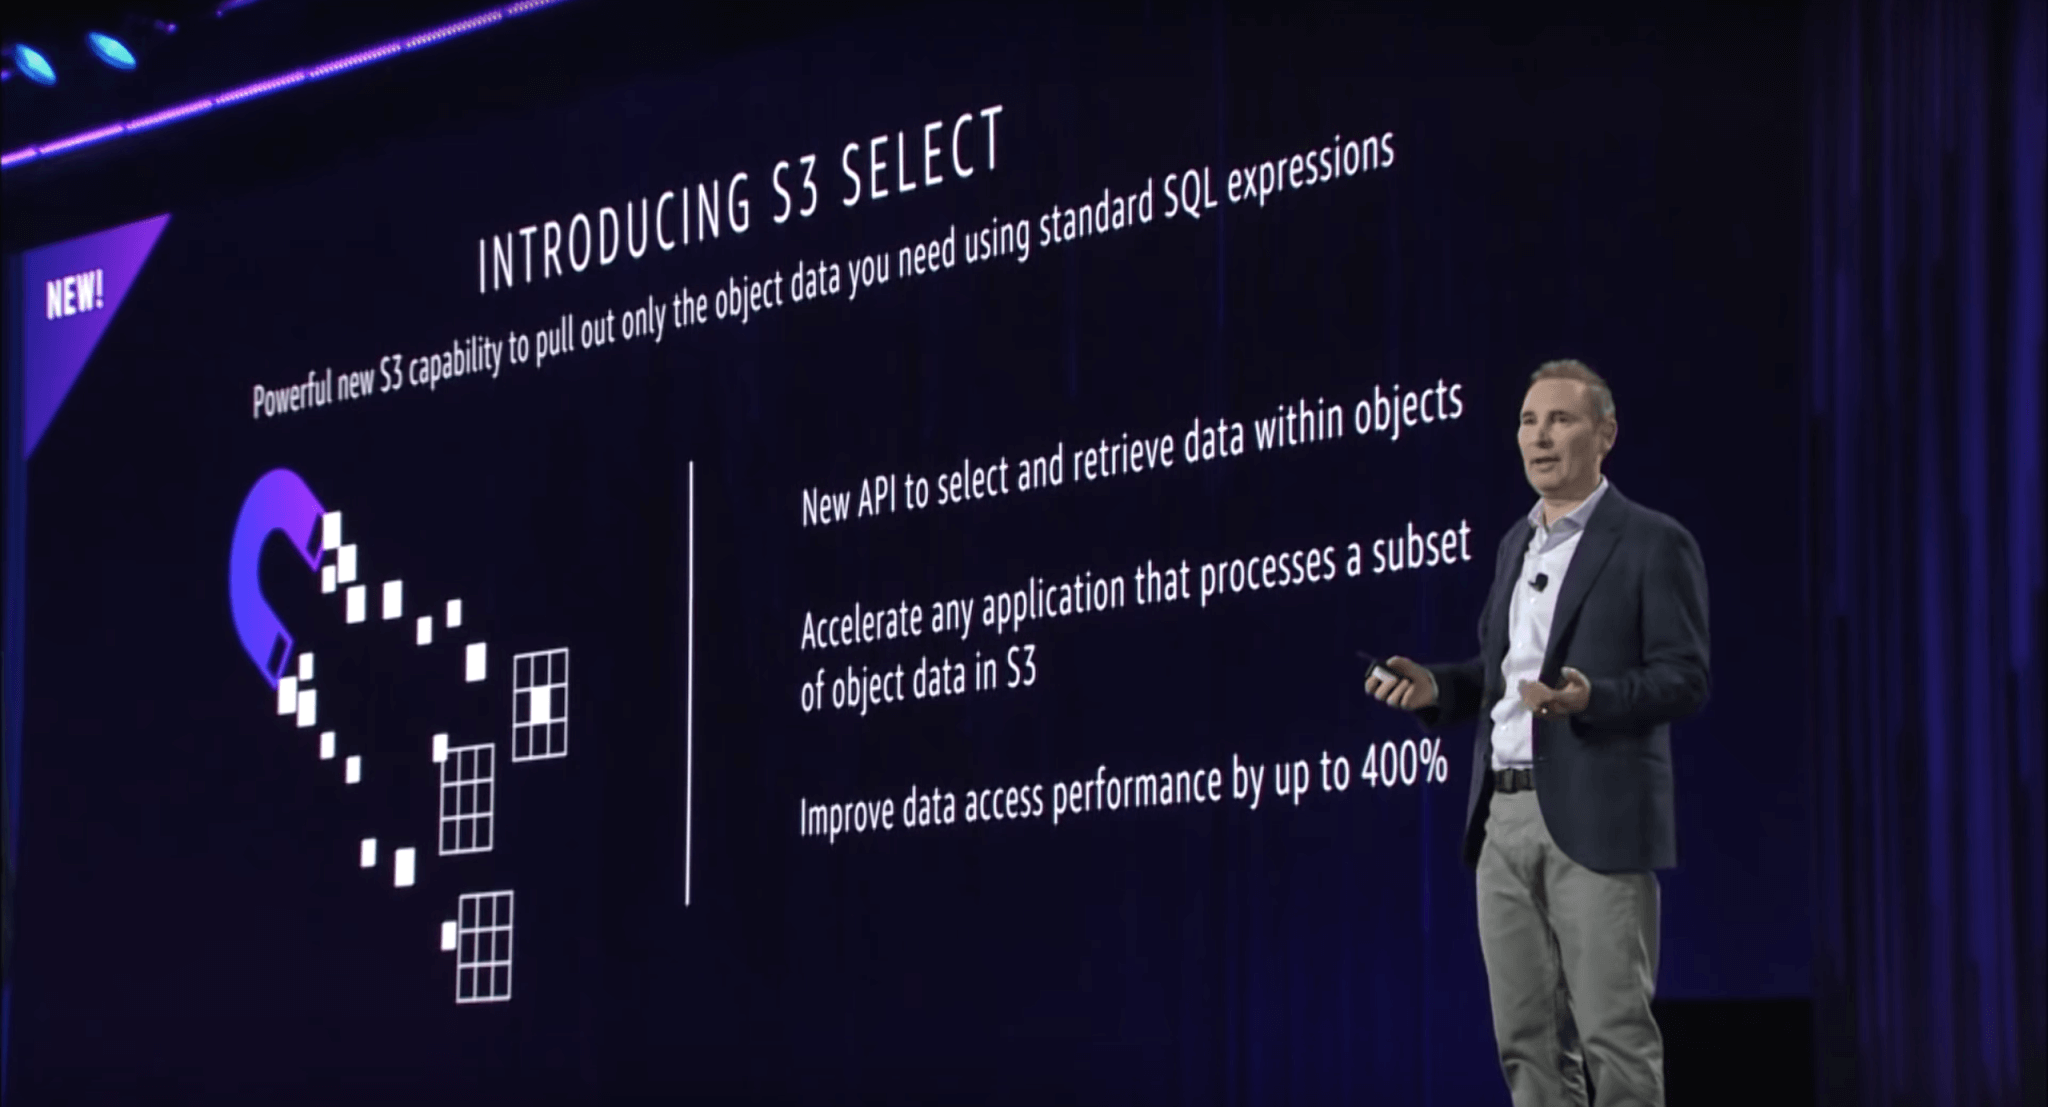 AWS Announcements at re:Invent 2017 - Introducing S3 Select